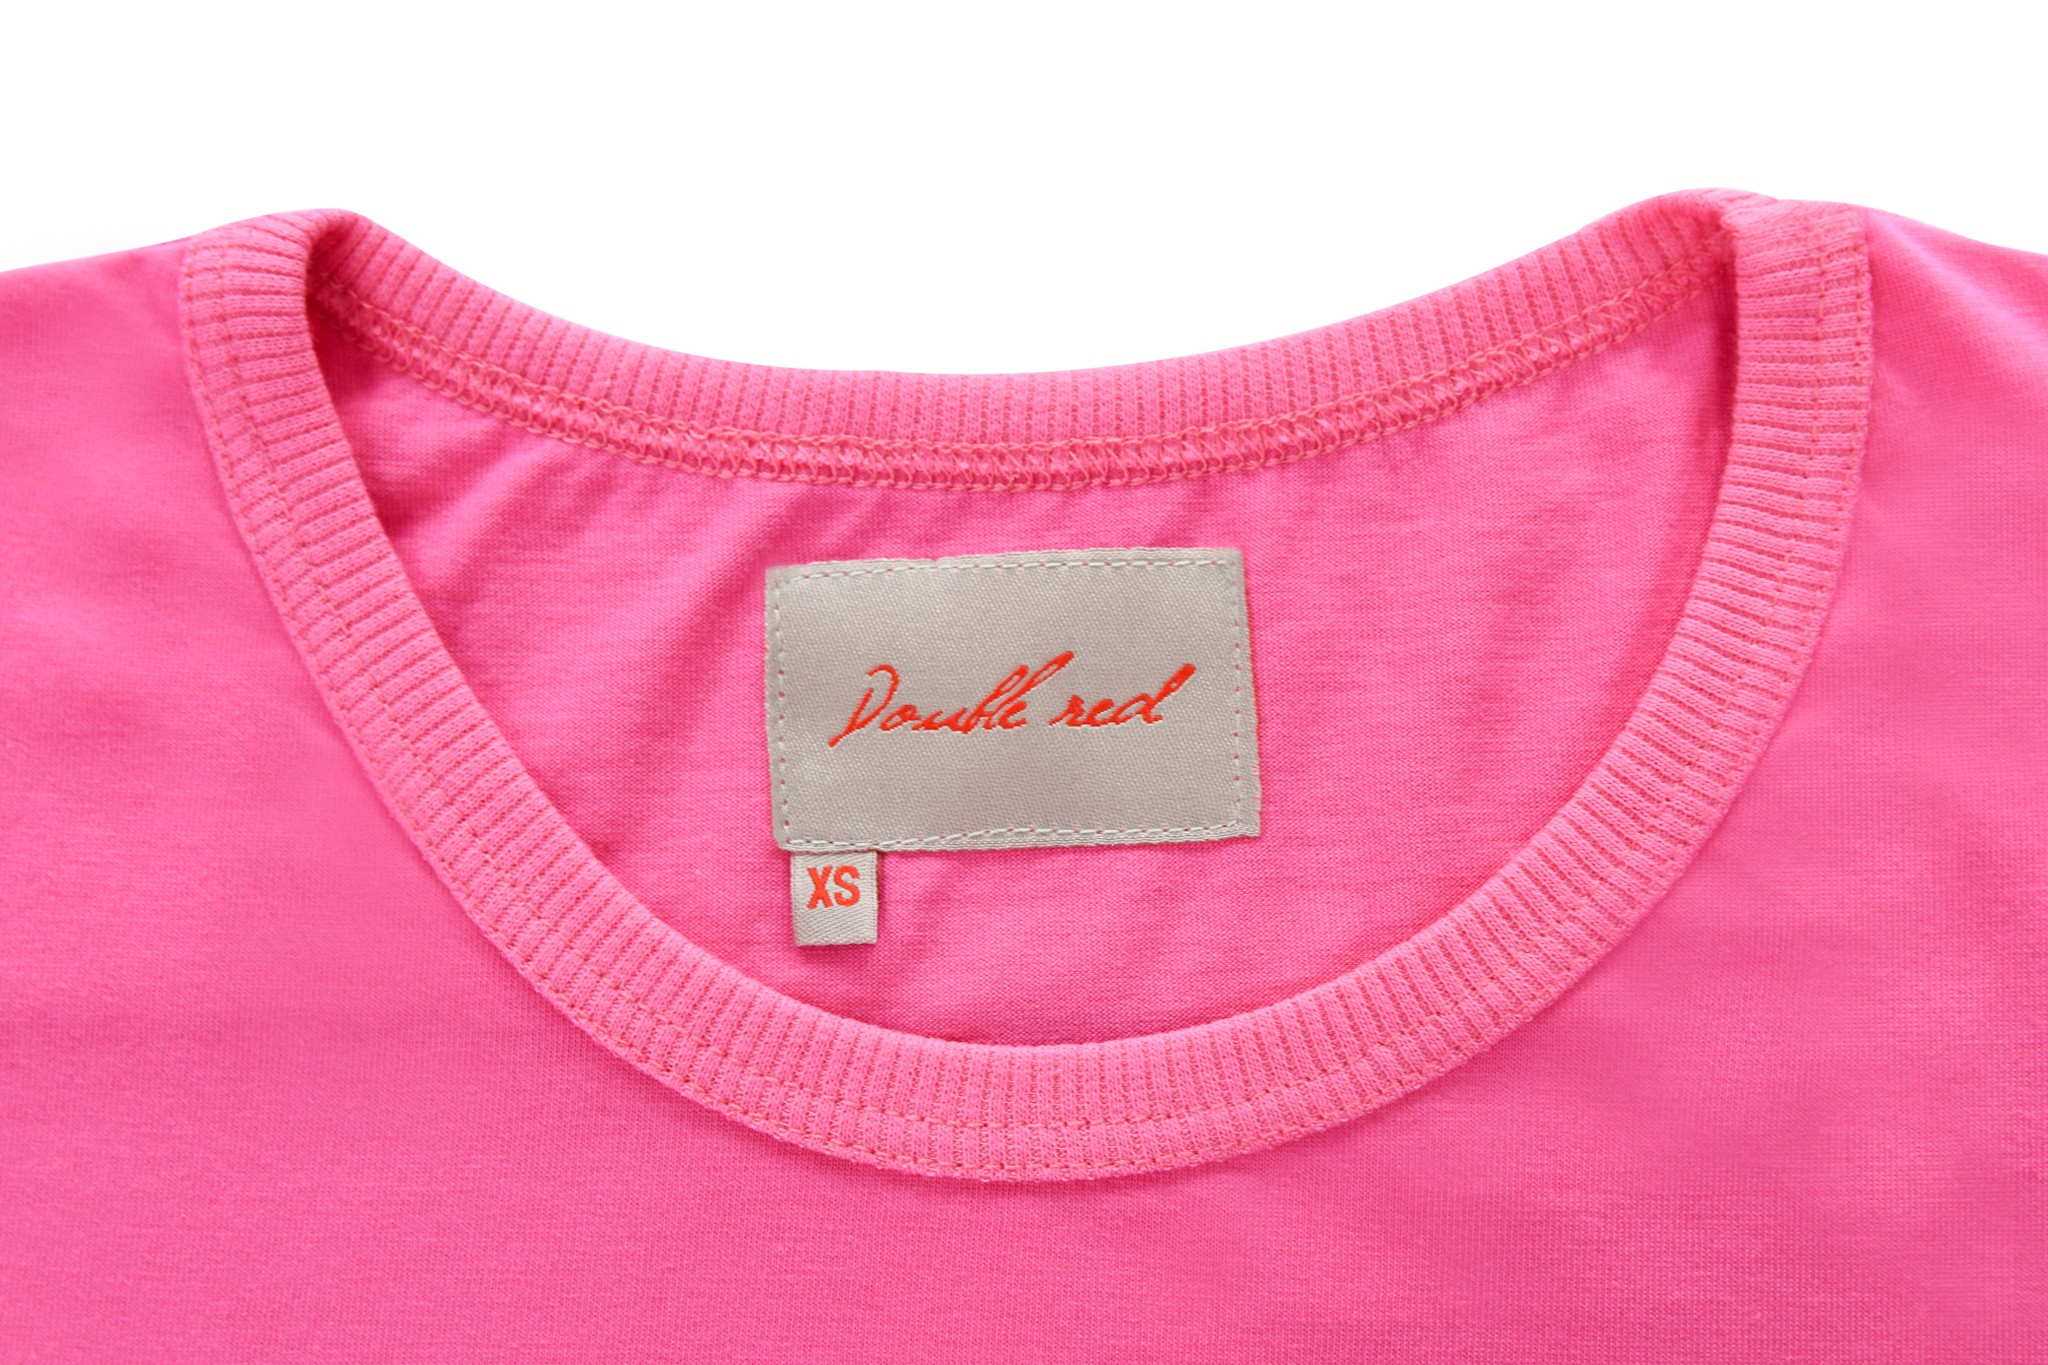 DOUBLE RED Trademark T-shirt Pink